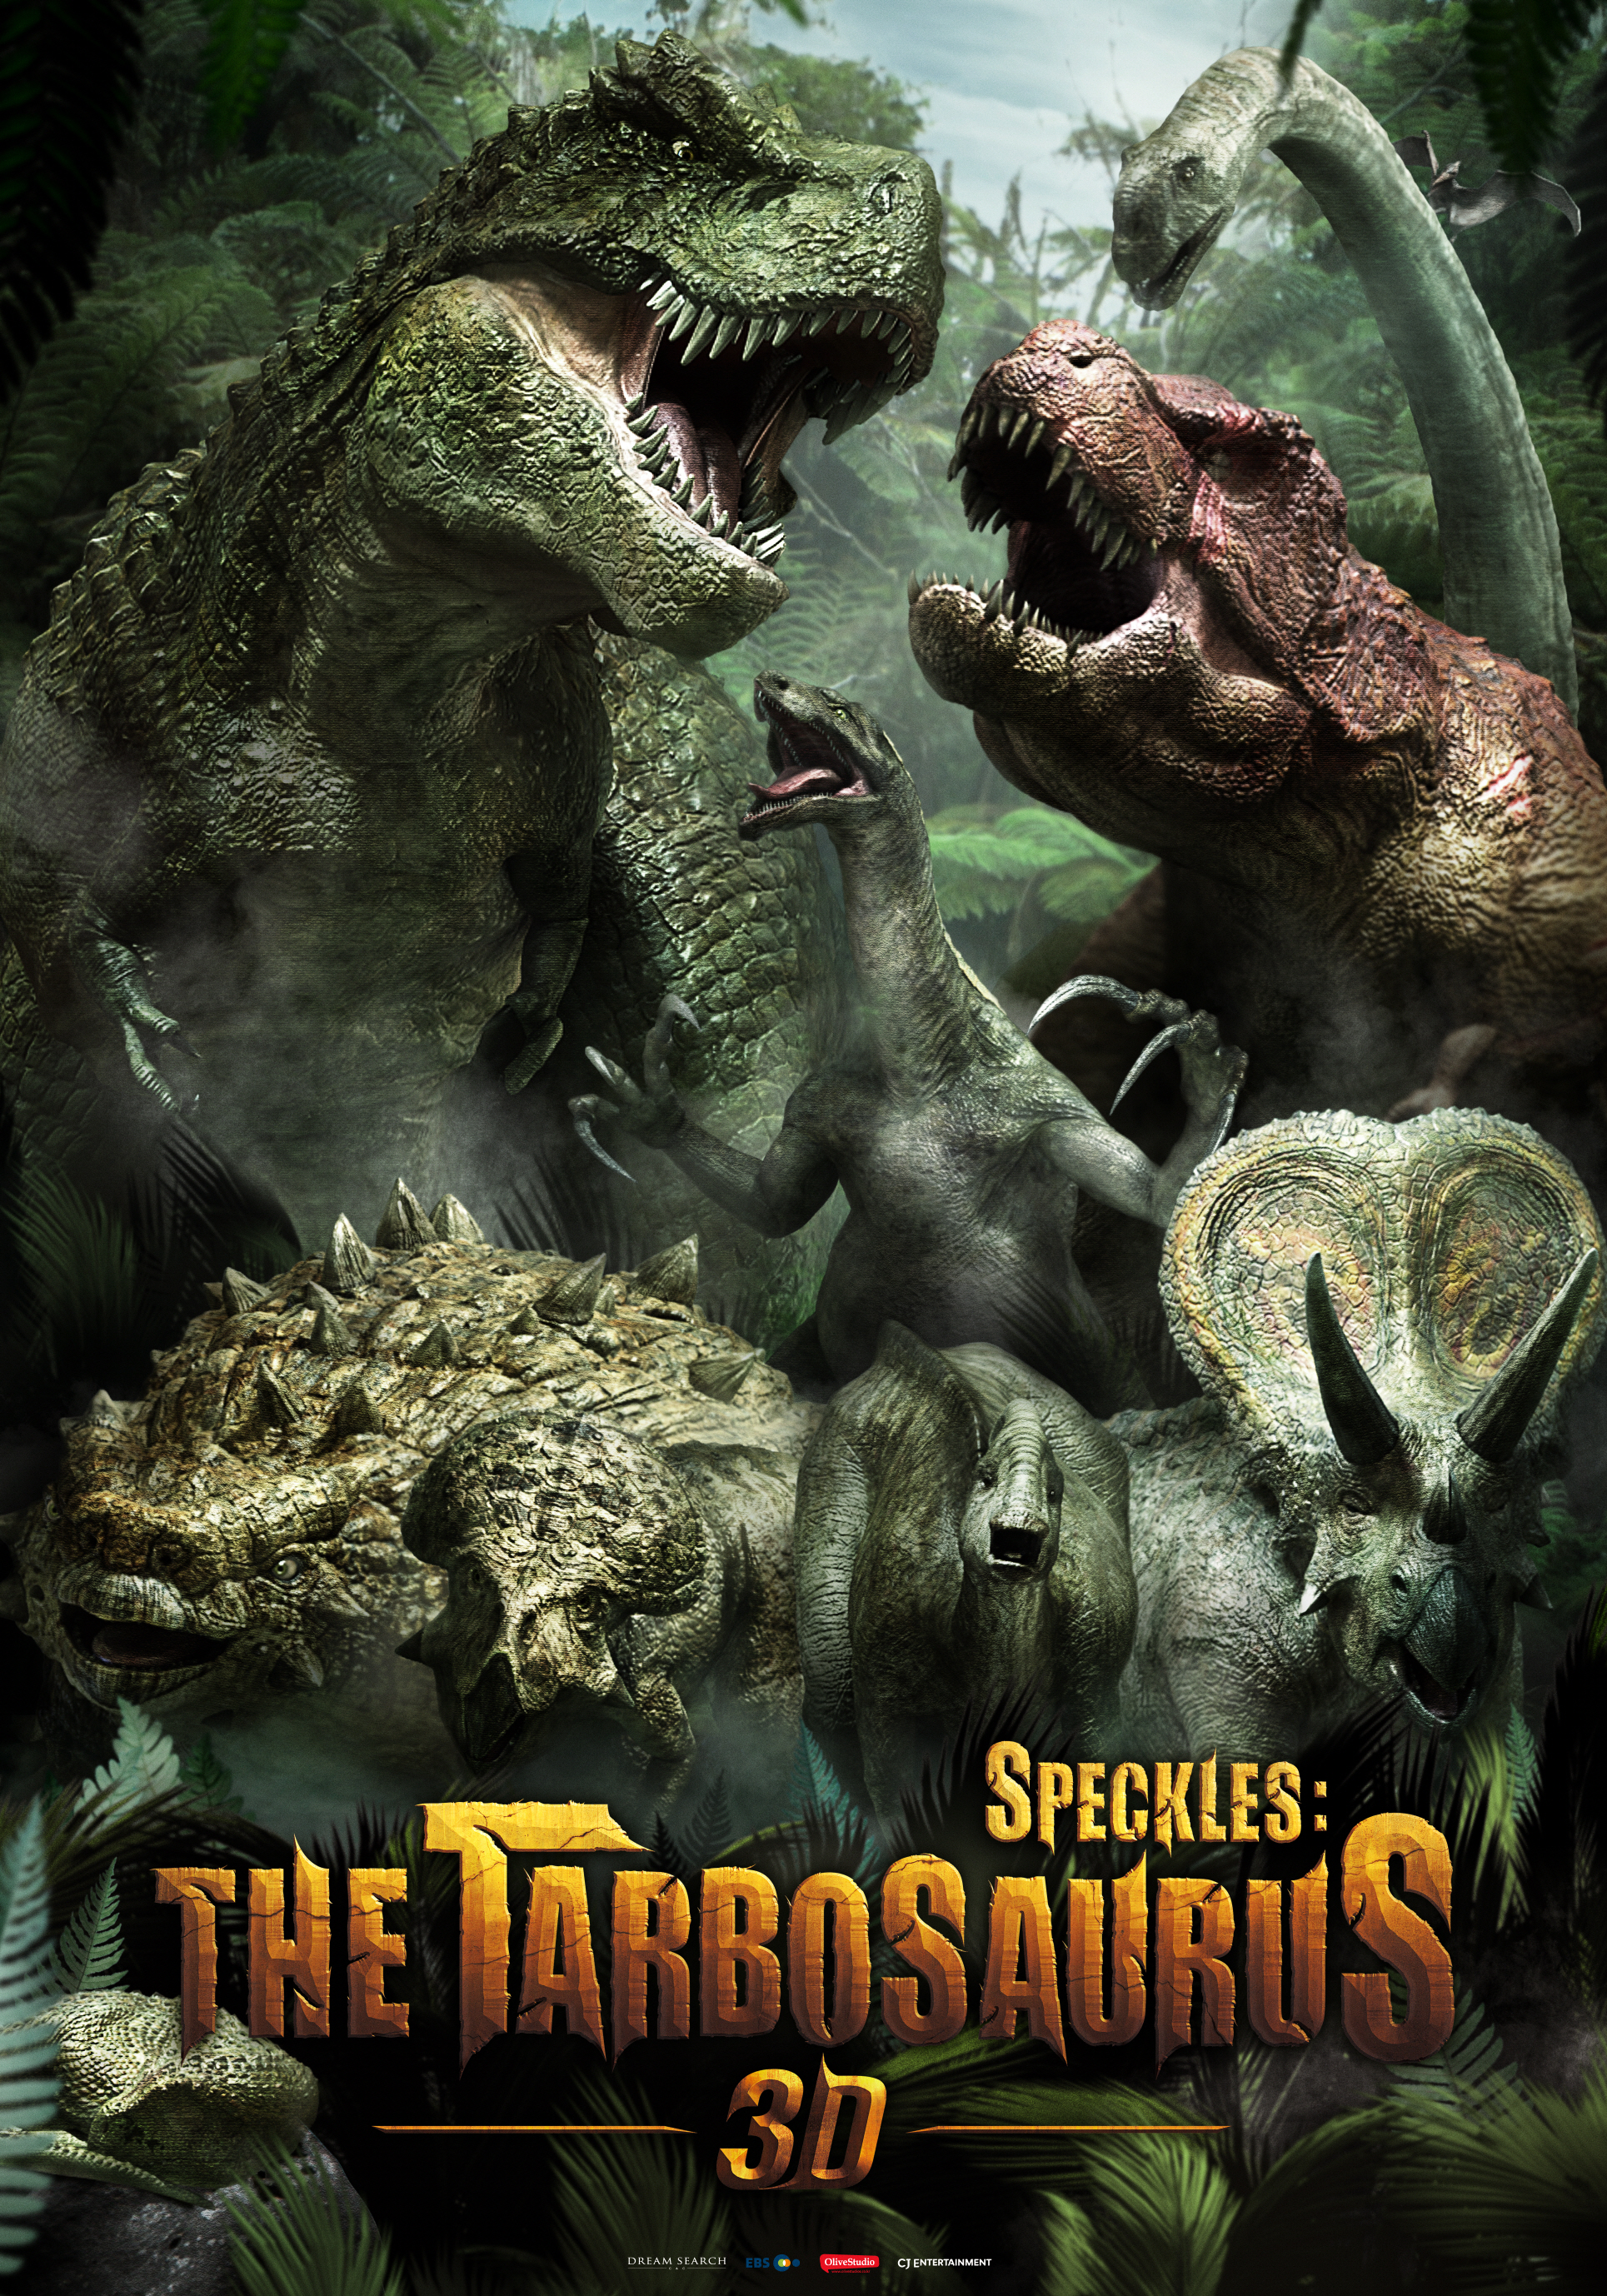 Speckles The Tarbosaurus (2012) Hindi Dubbed Movie 720p